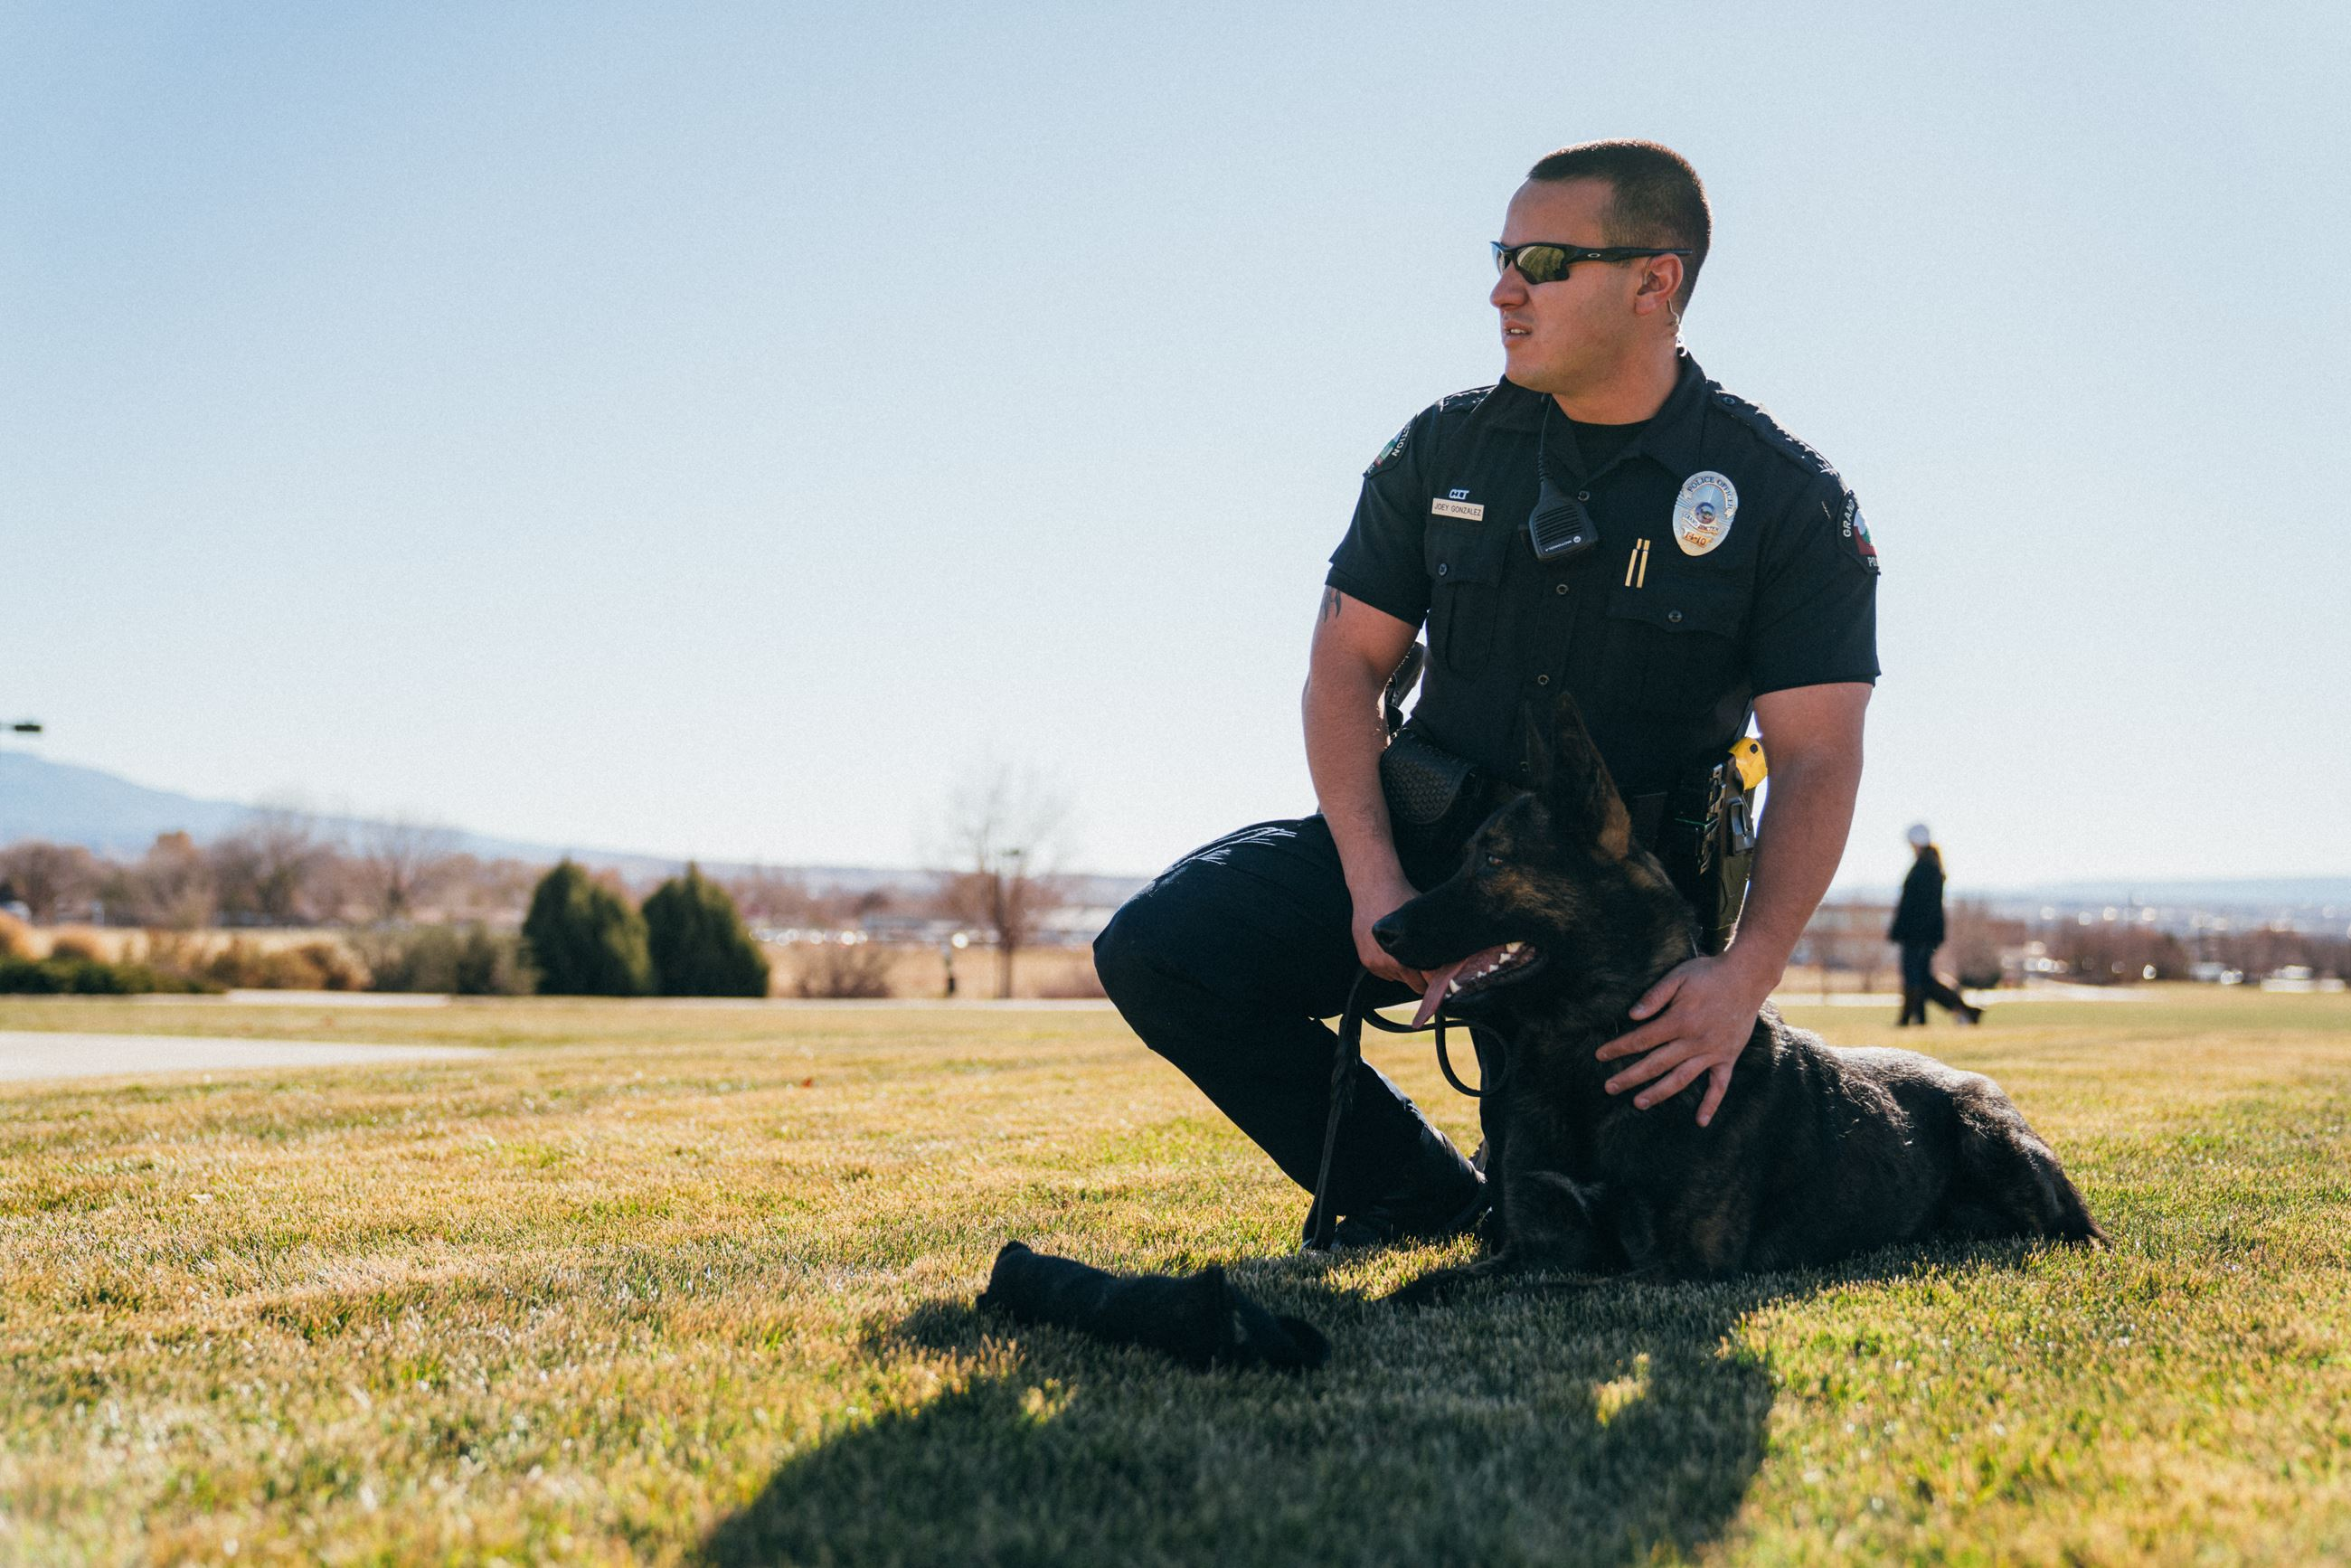 Officer Gonzales with his K9 partner Merlin